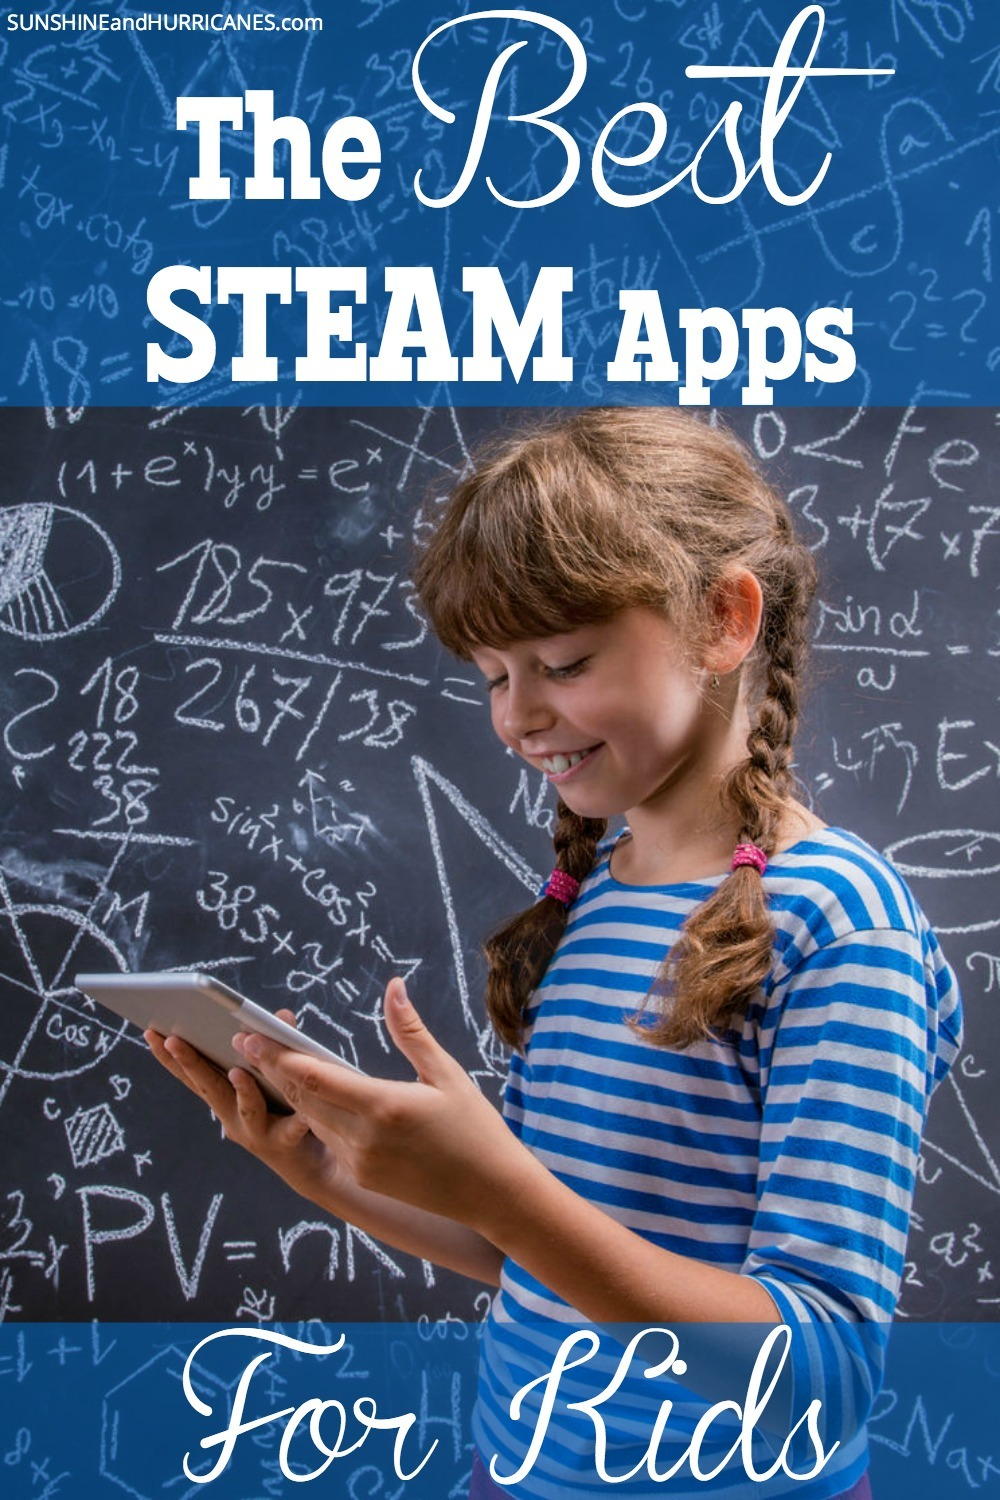 Looking for a way to make learning fun? STEAM (aka science, technology, engineering, arts and math) make up the core of your child's education. Help them excel in all areas by making the process enjoyable with these STEAM Apps. A great way to reinforce lessons as home and help them gain confidence in any of these subjects where they might be struggling. The BEST STEAM Apps for Kids. SunshineandHurricanes.com